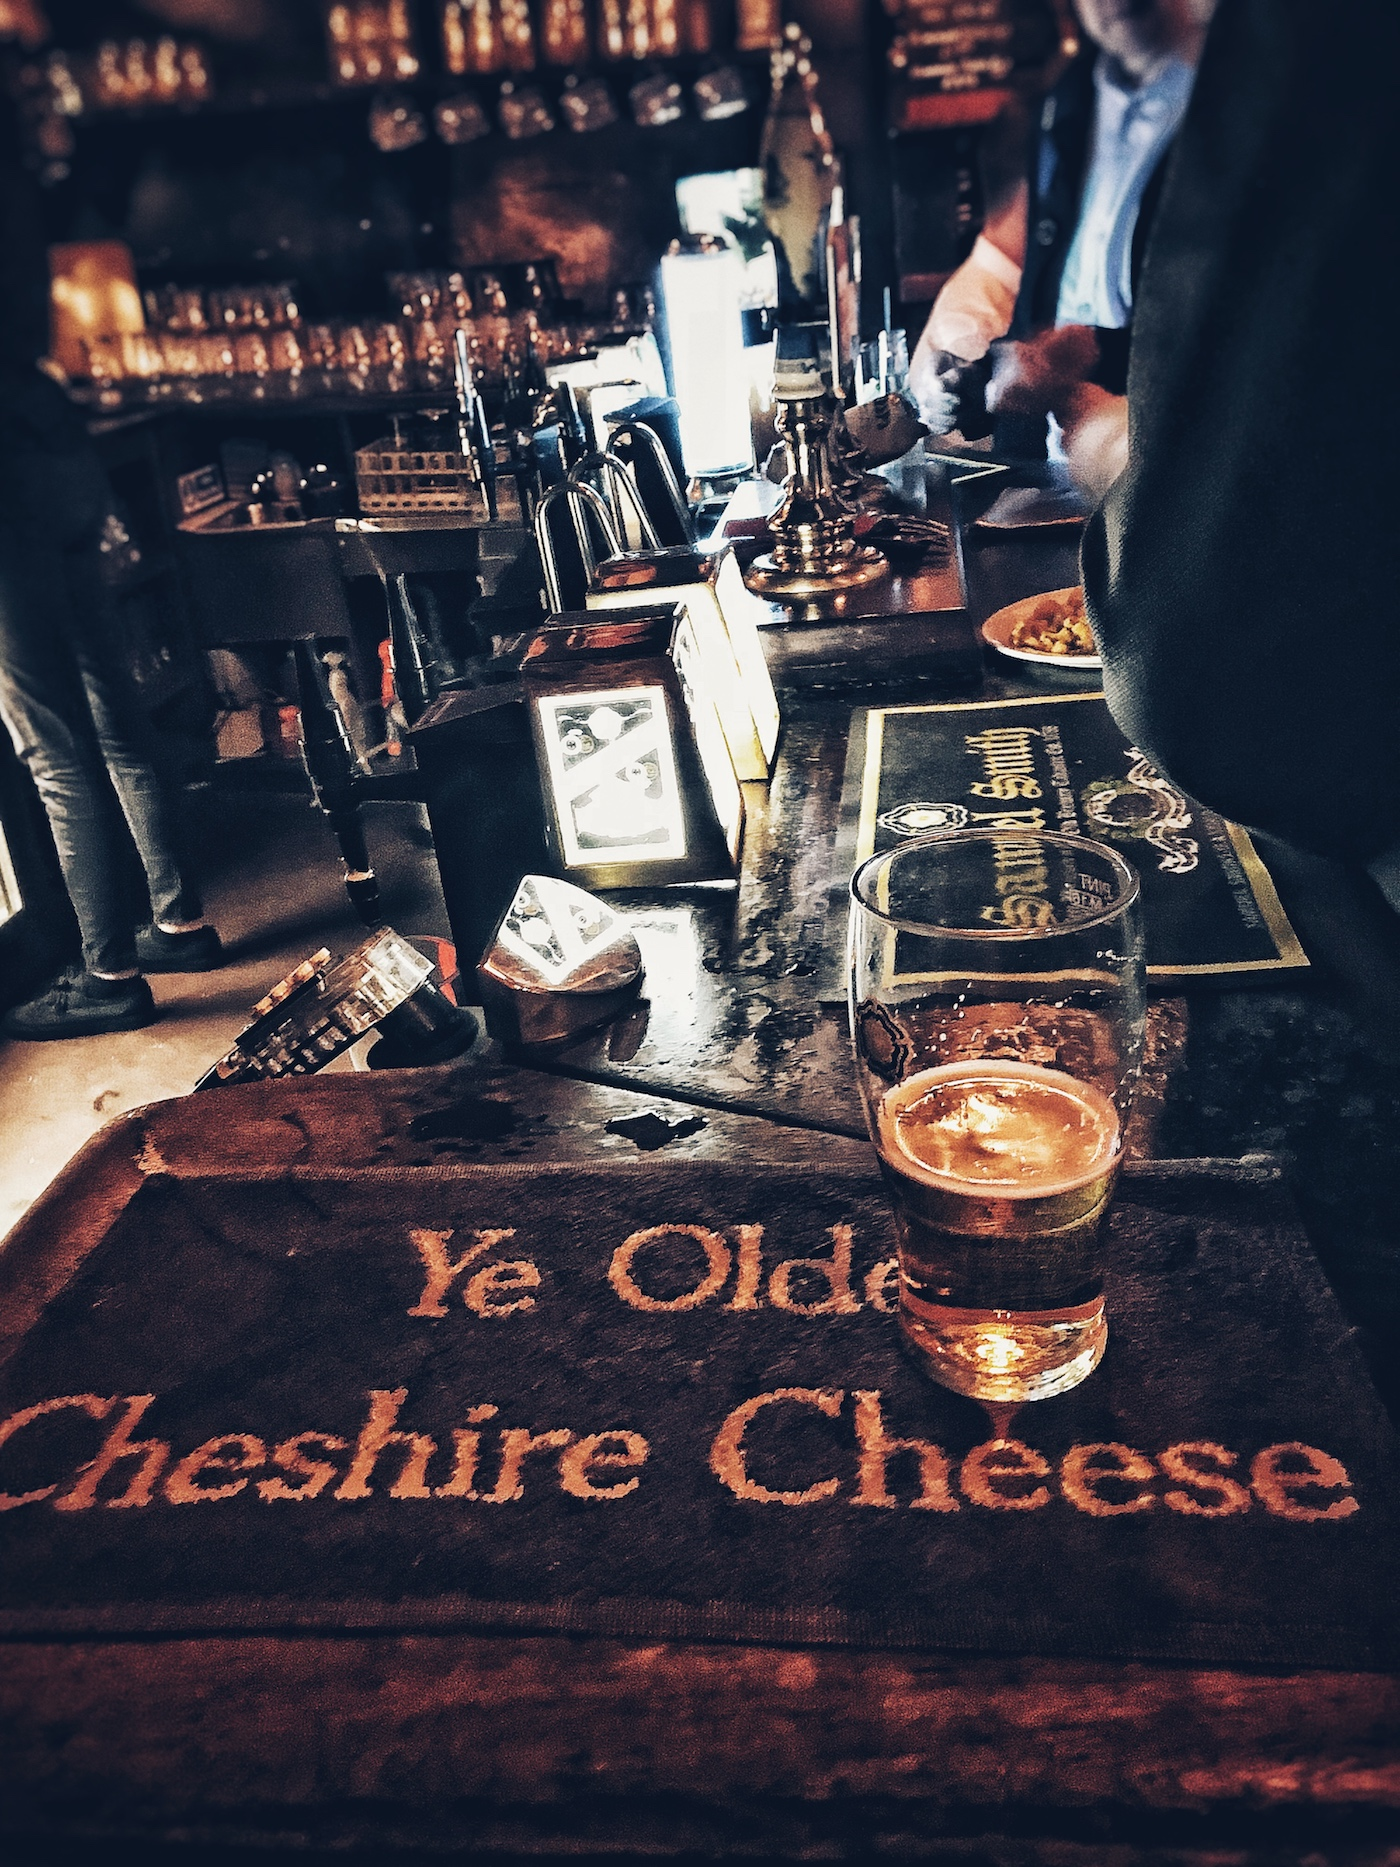 Having a Pint at Ye Oldes Cheshire Cheese.